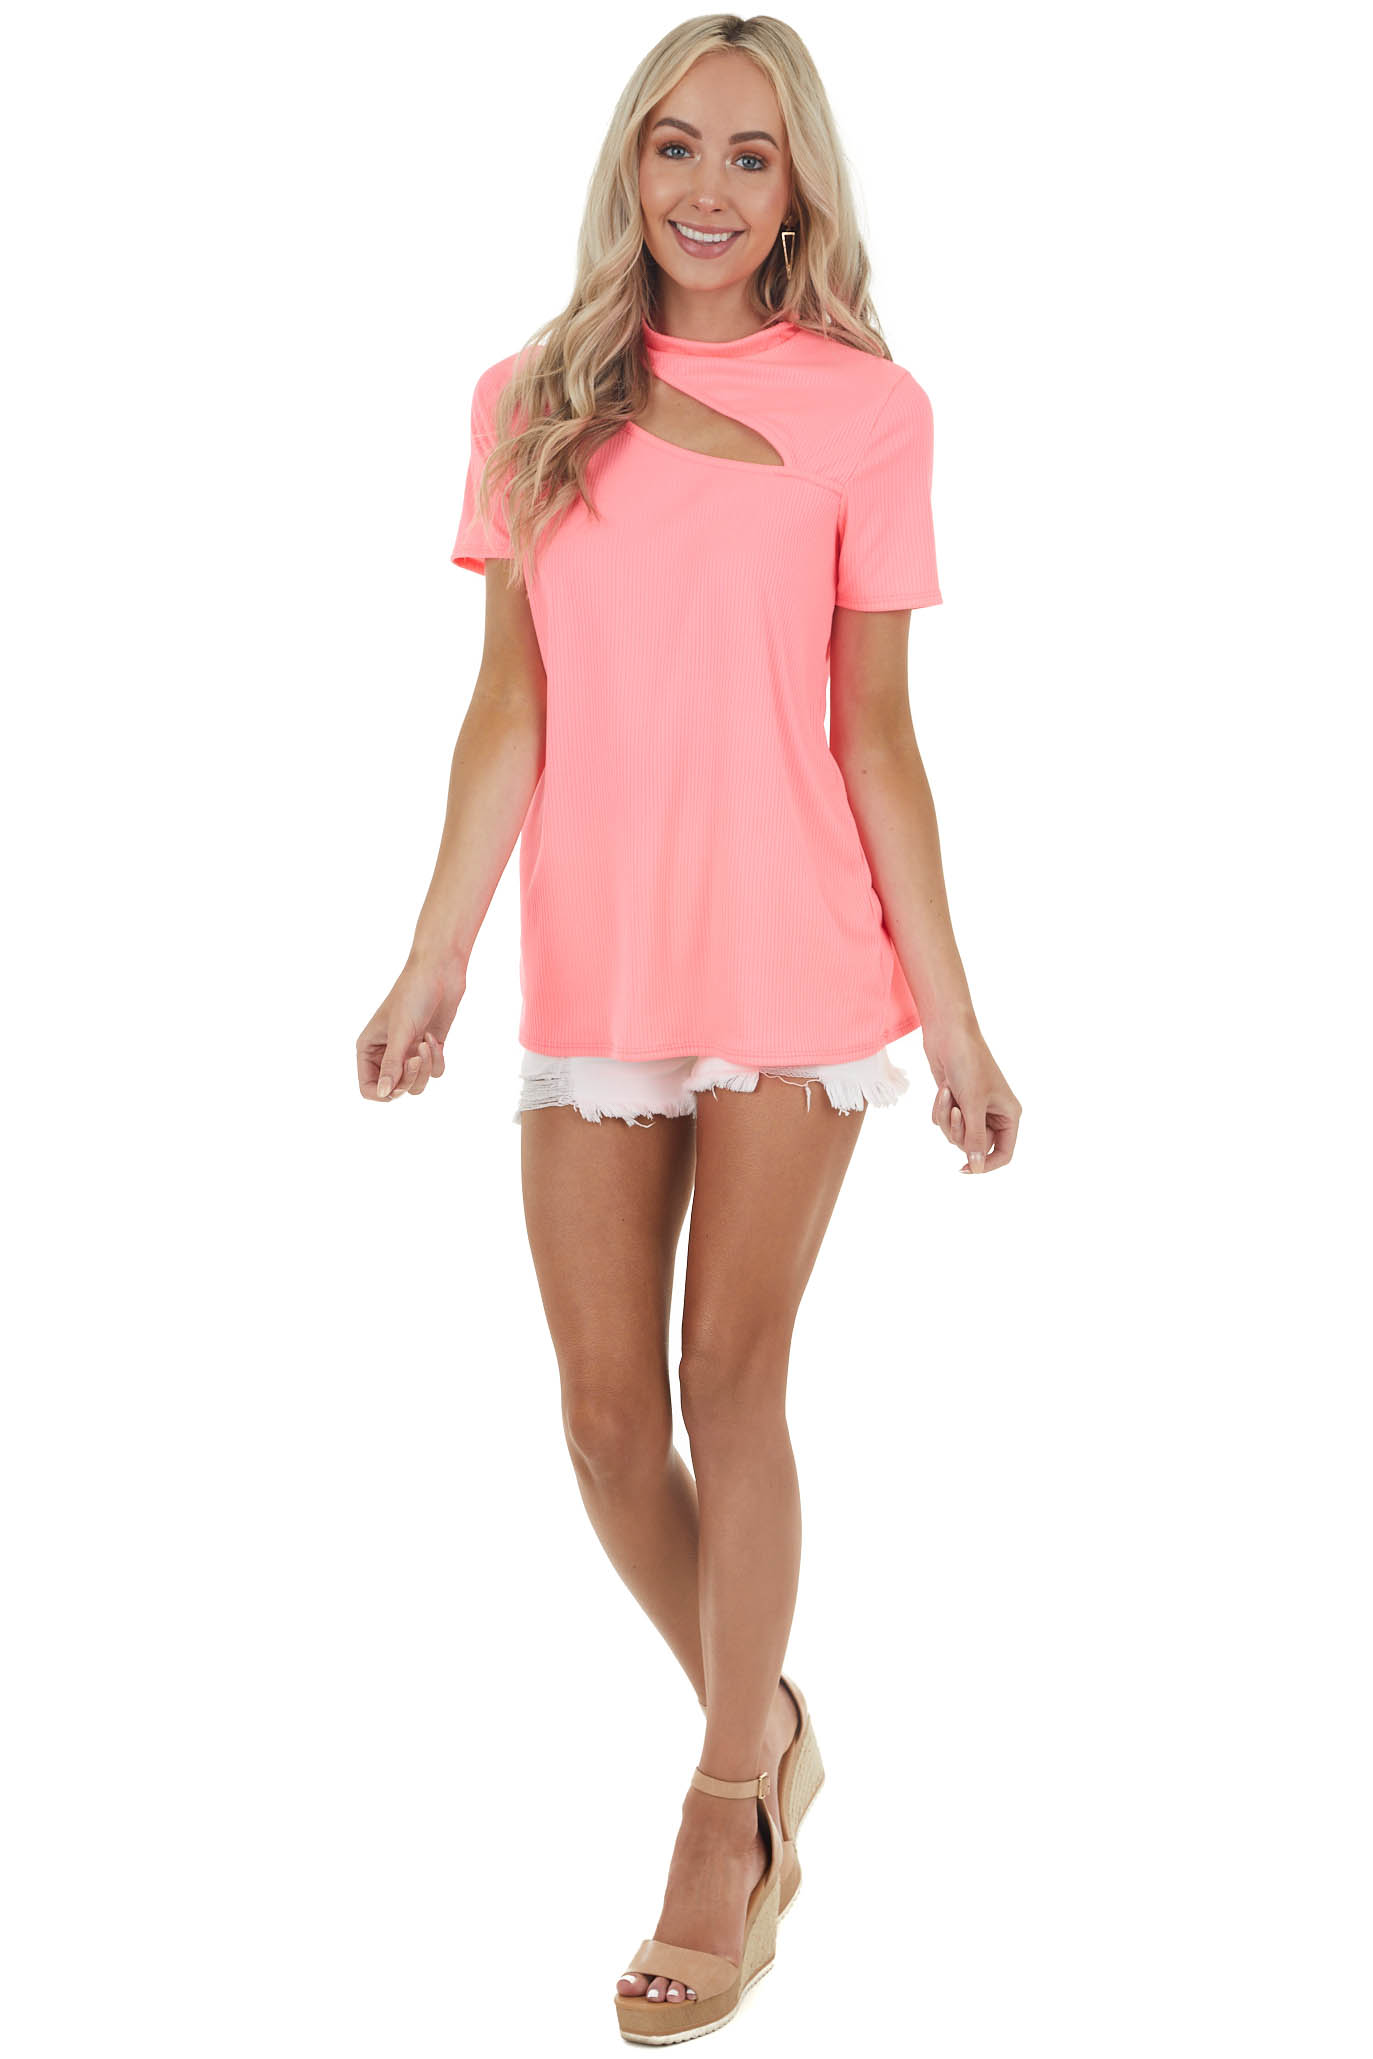 Neon Pink Ribbed Short Sleeve Knit Top with Cut Out Detail